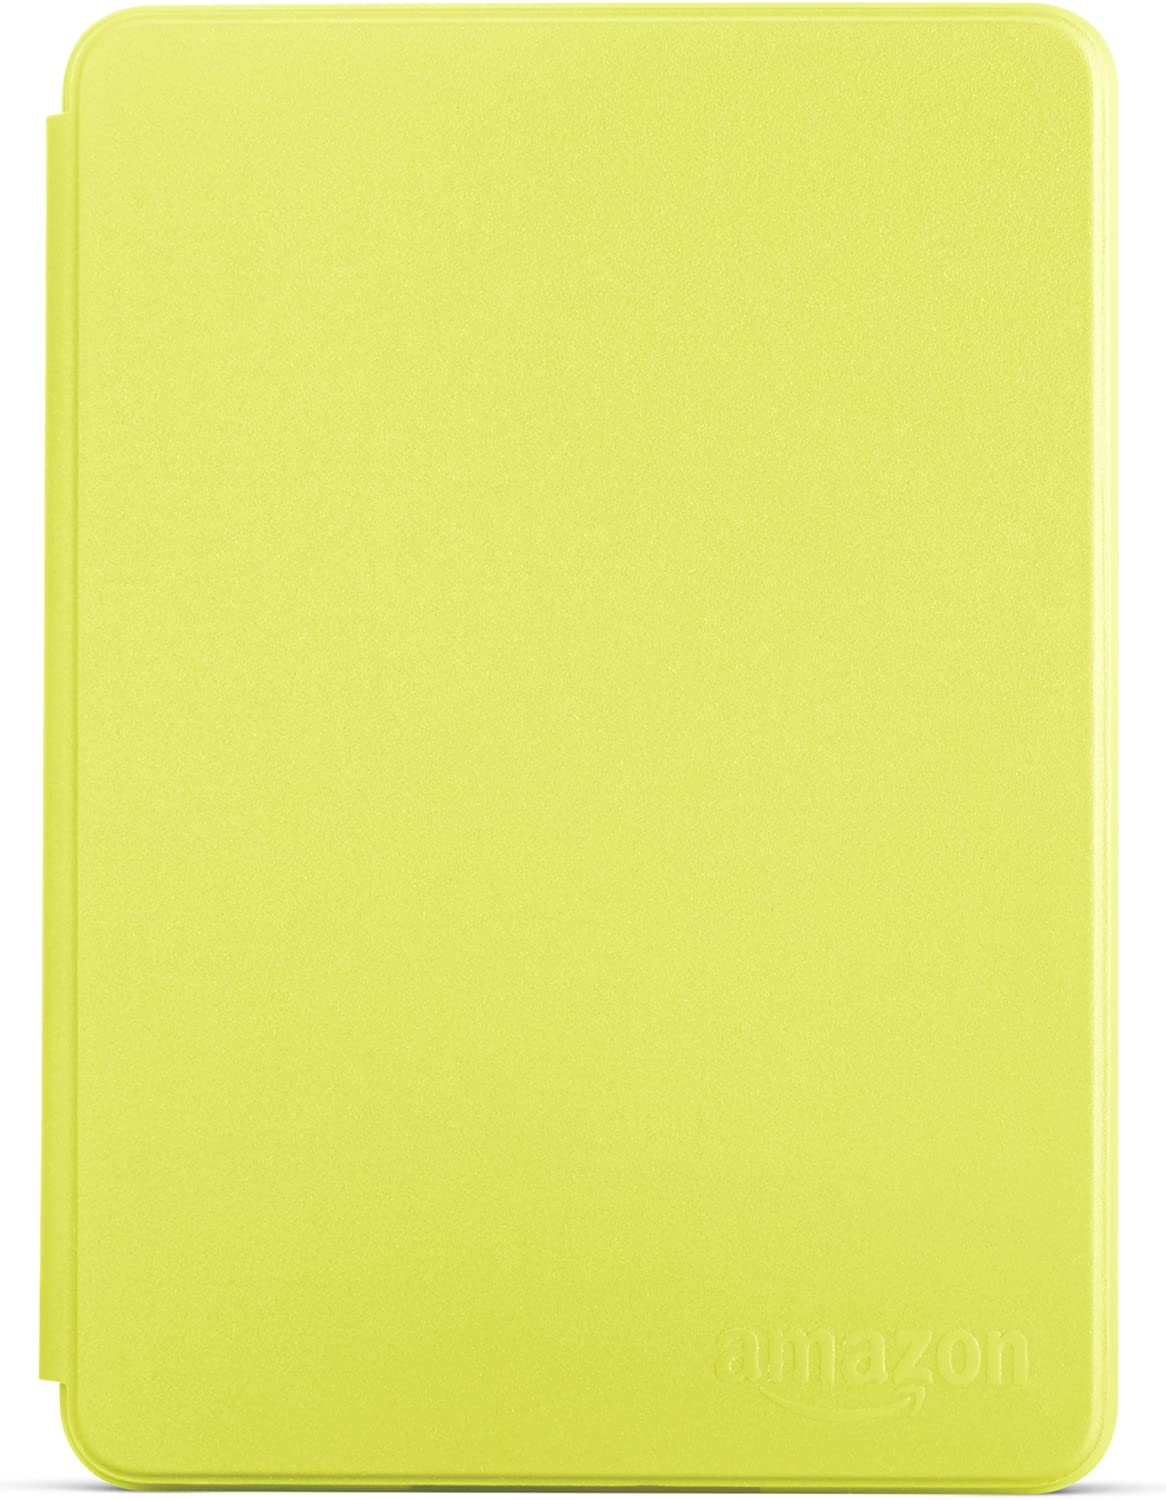 will not fit previous generation Kindle devices Protective Cover for Kindle Citron 7th Generation